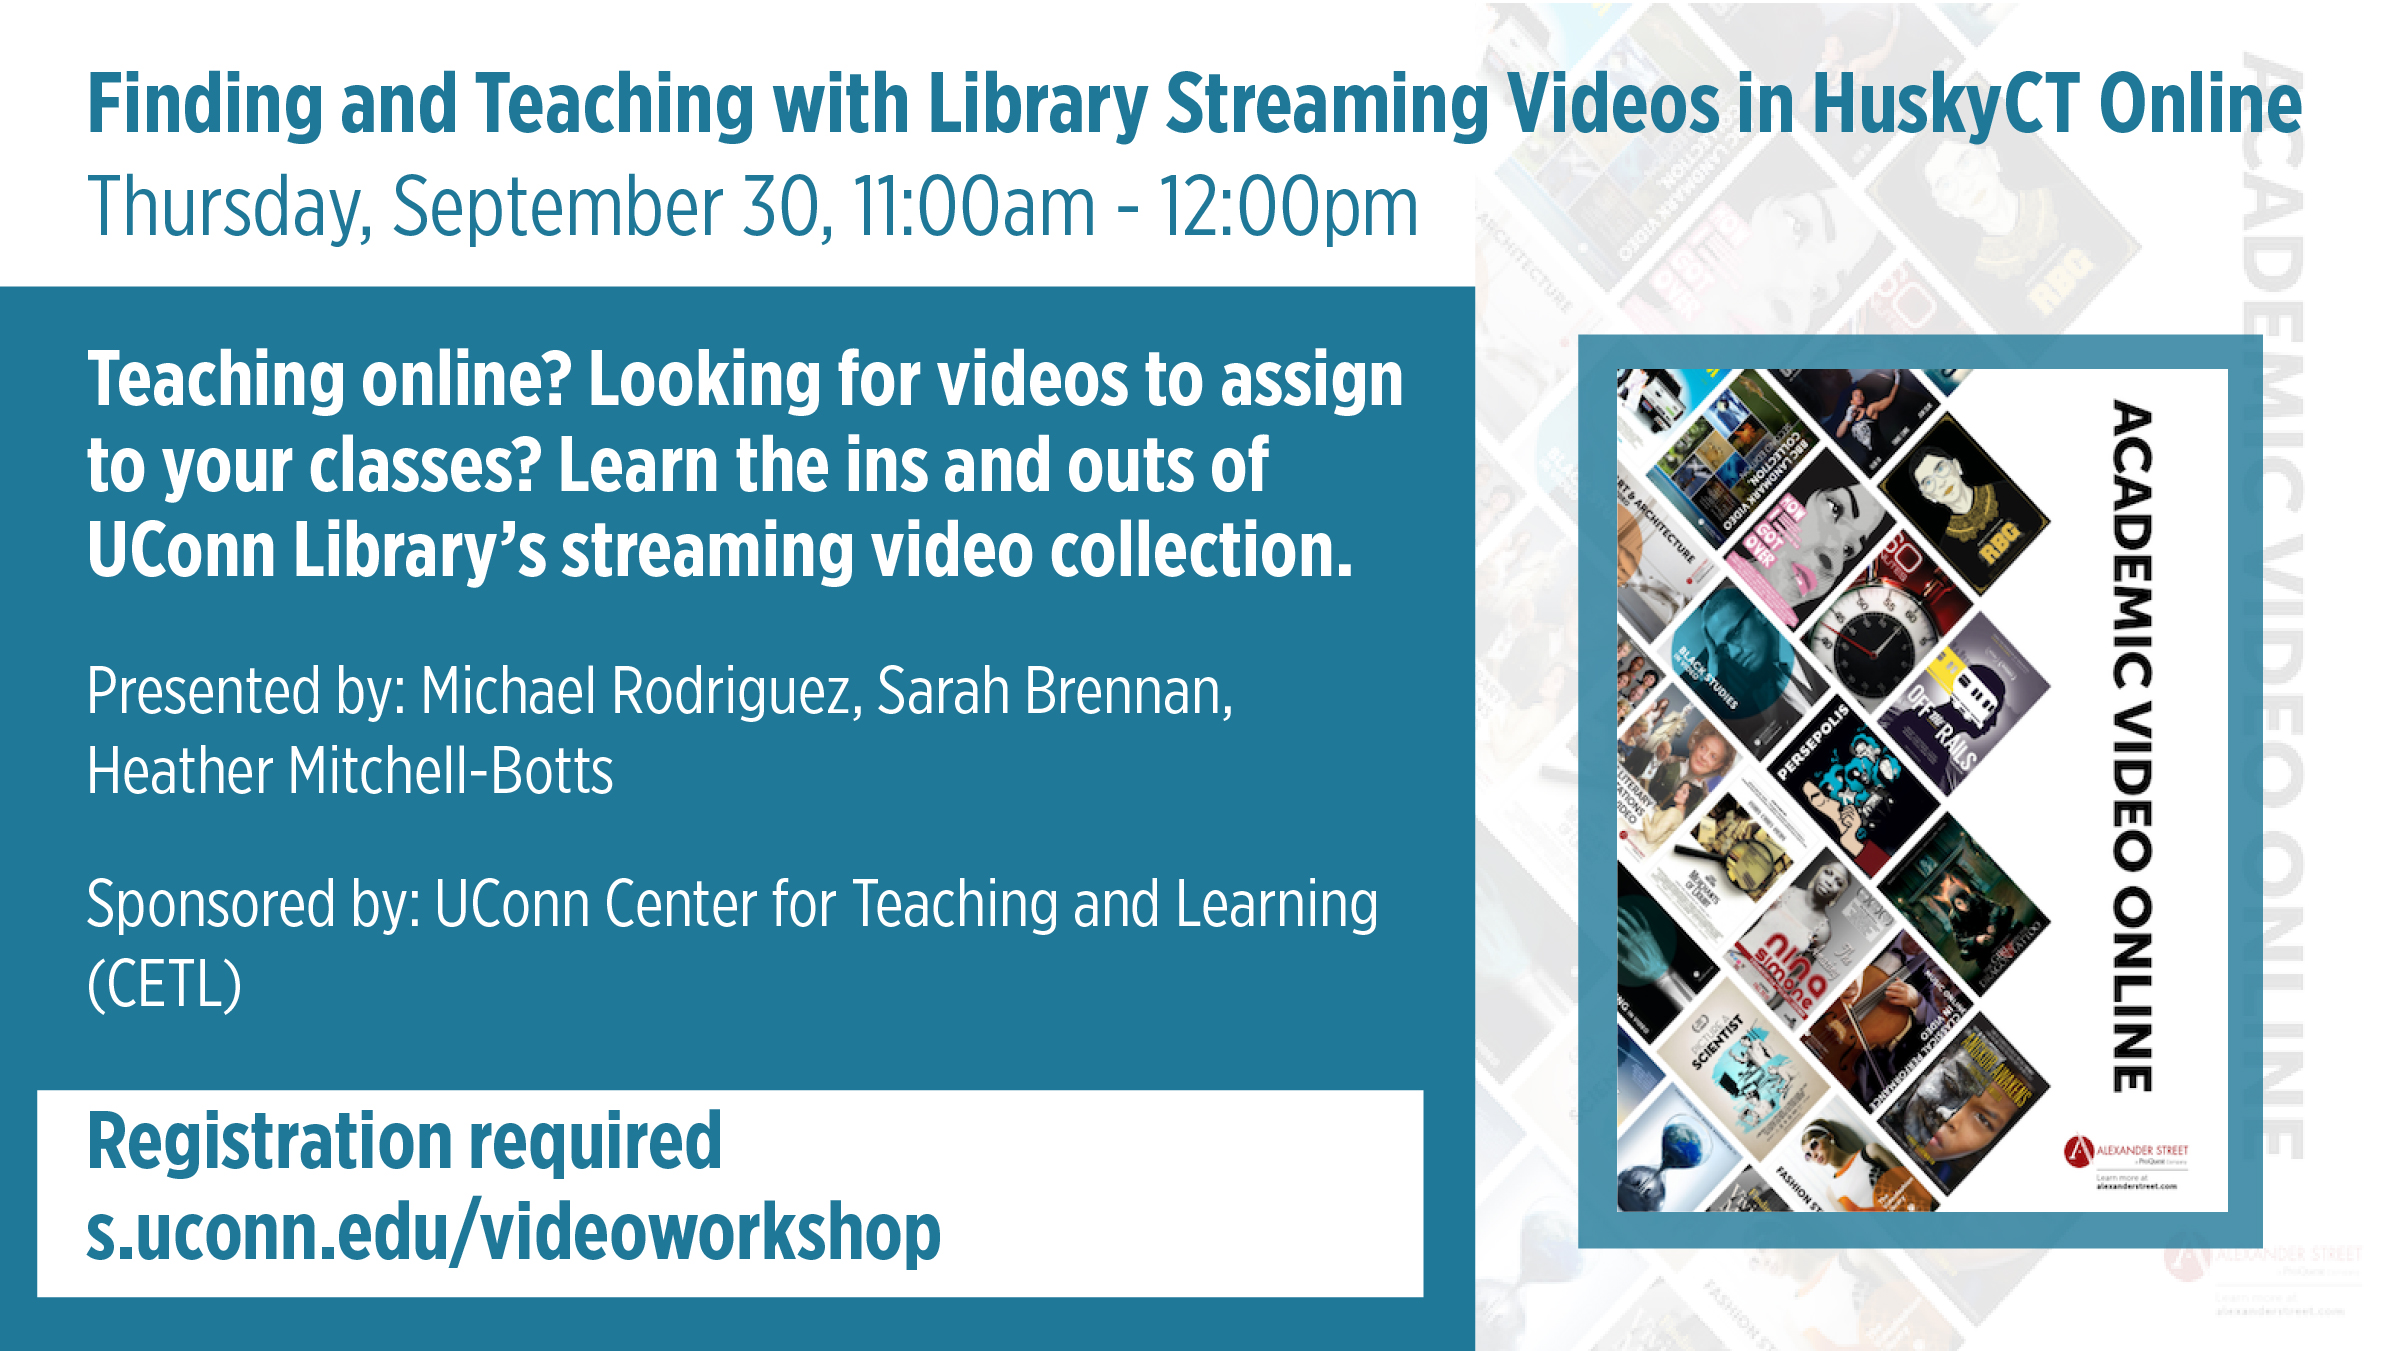 Finding and Teaching with Library Streaming Videos in HuskyCT Online Thursday, September 30, 11:00am - 12:00pm, Teaching online? Looking for videos to assign to your classes? Learn the ins and outs of UConn Library's streaming video collection. Presented by: Michael Rodriguez, Sarah Brennan, Heather Mitchell-Botts. Sponsored by: UConn Center for Teaching and Learning (CETL) Registration required s.uconn.edu/videoworkshop